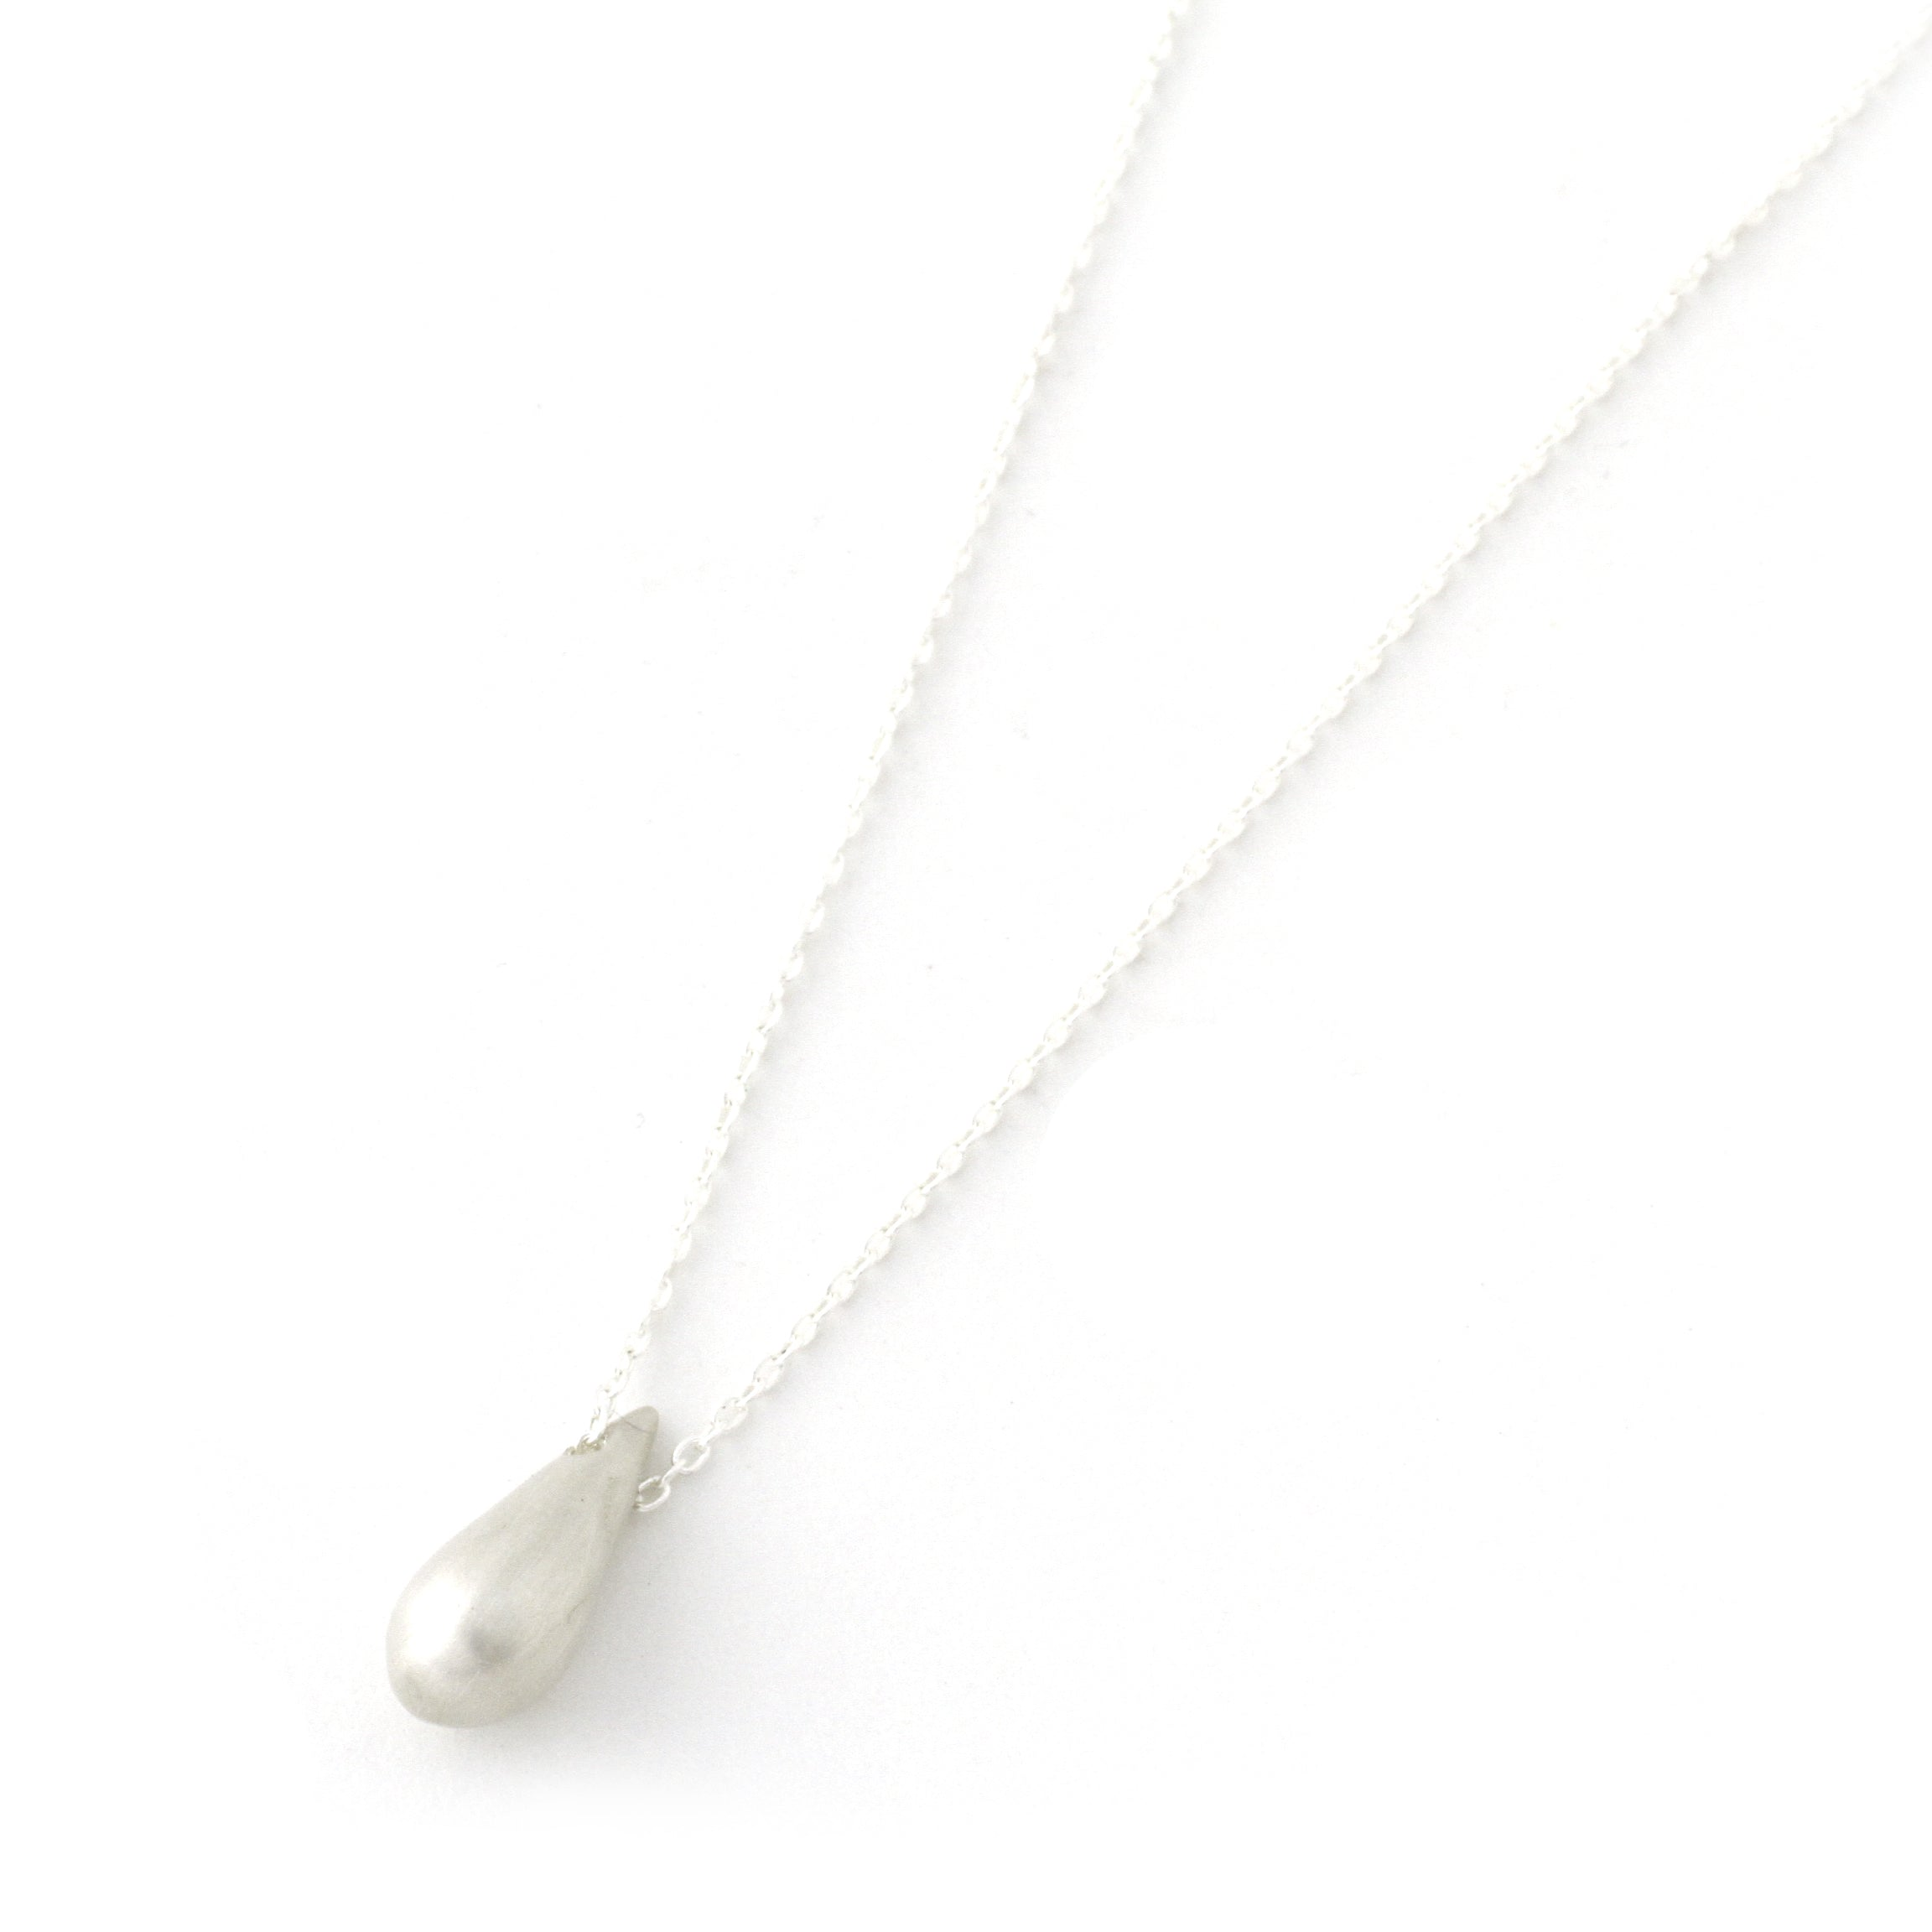 Raindrop Necklace (Large Sterling Silver)